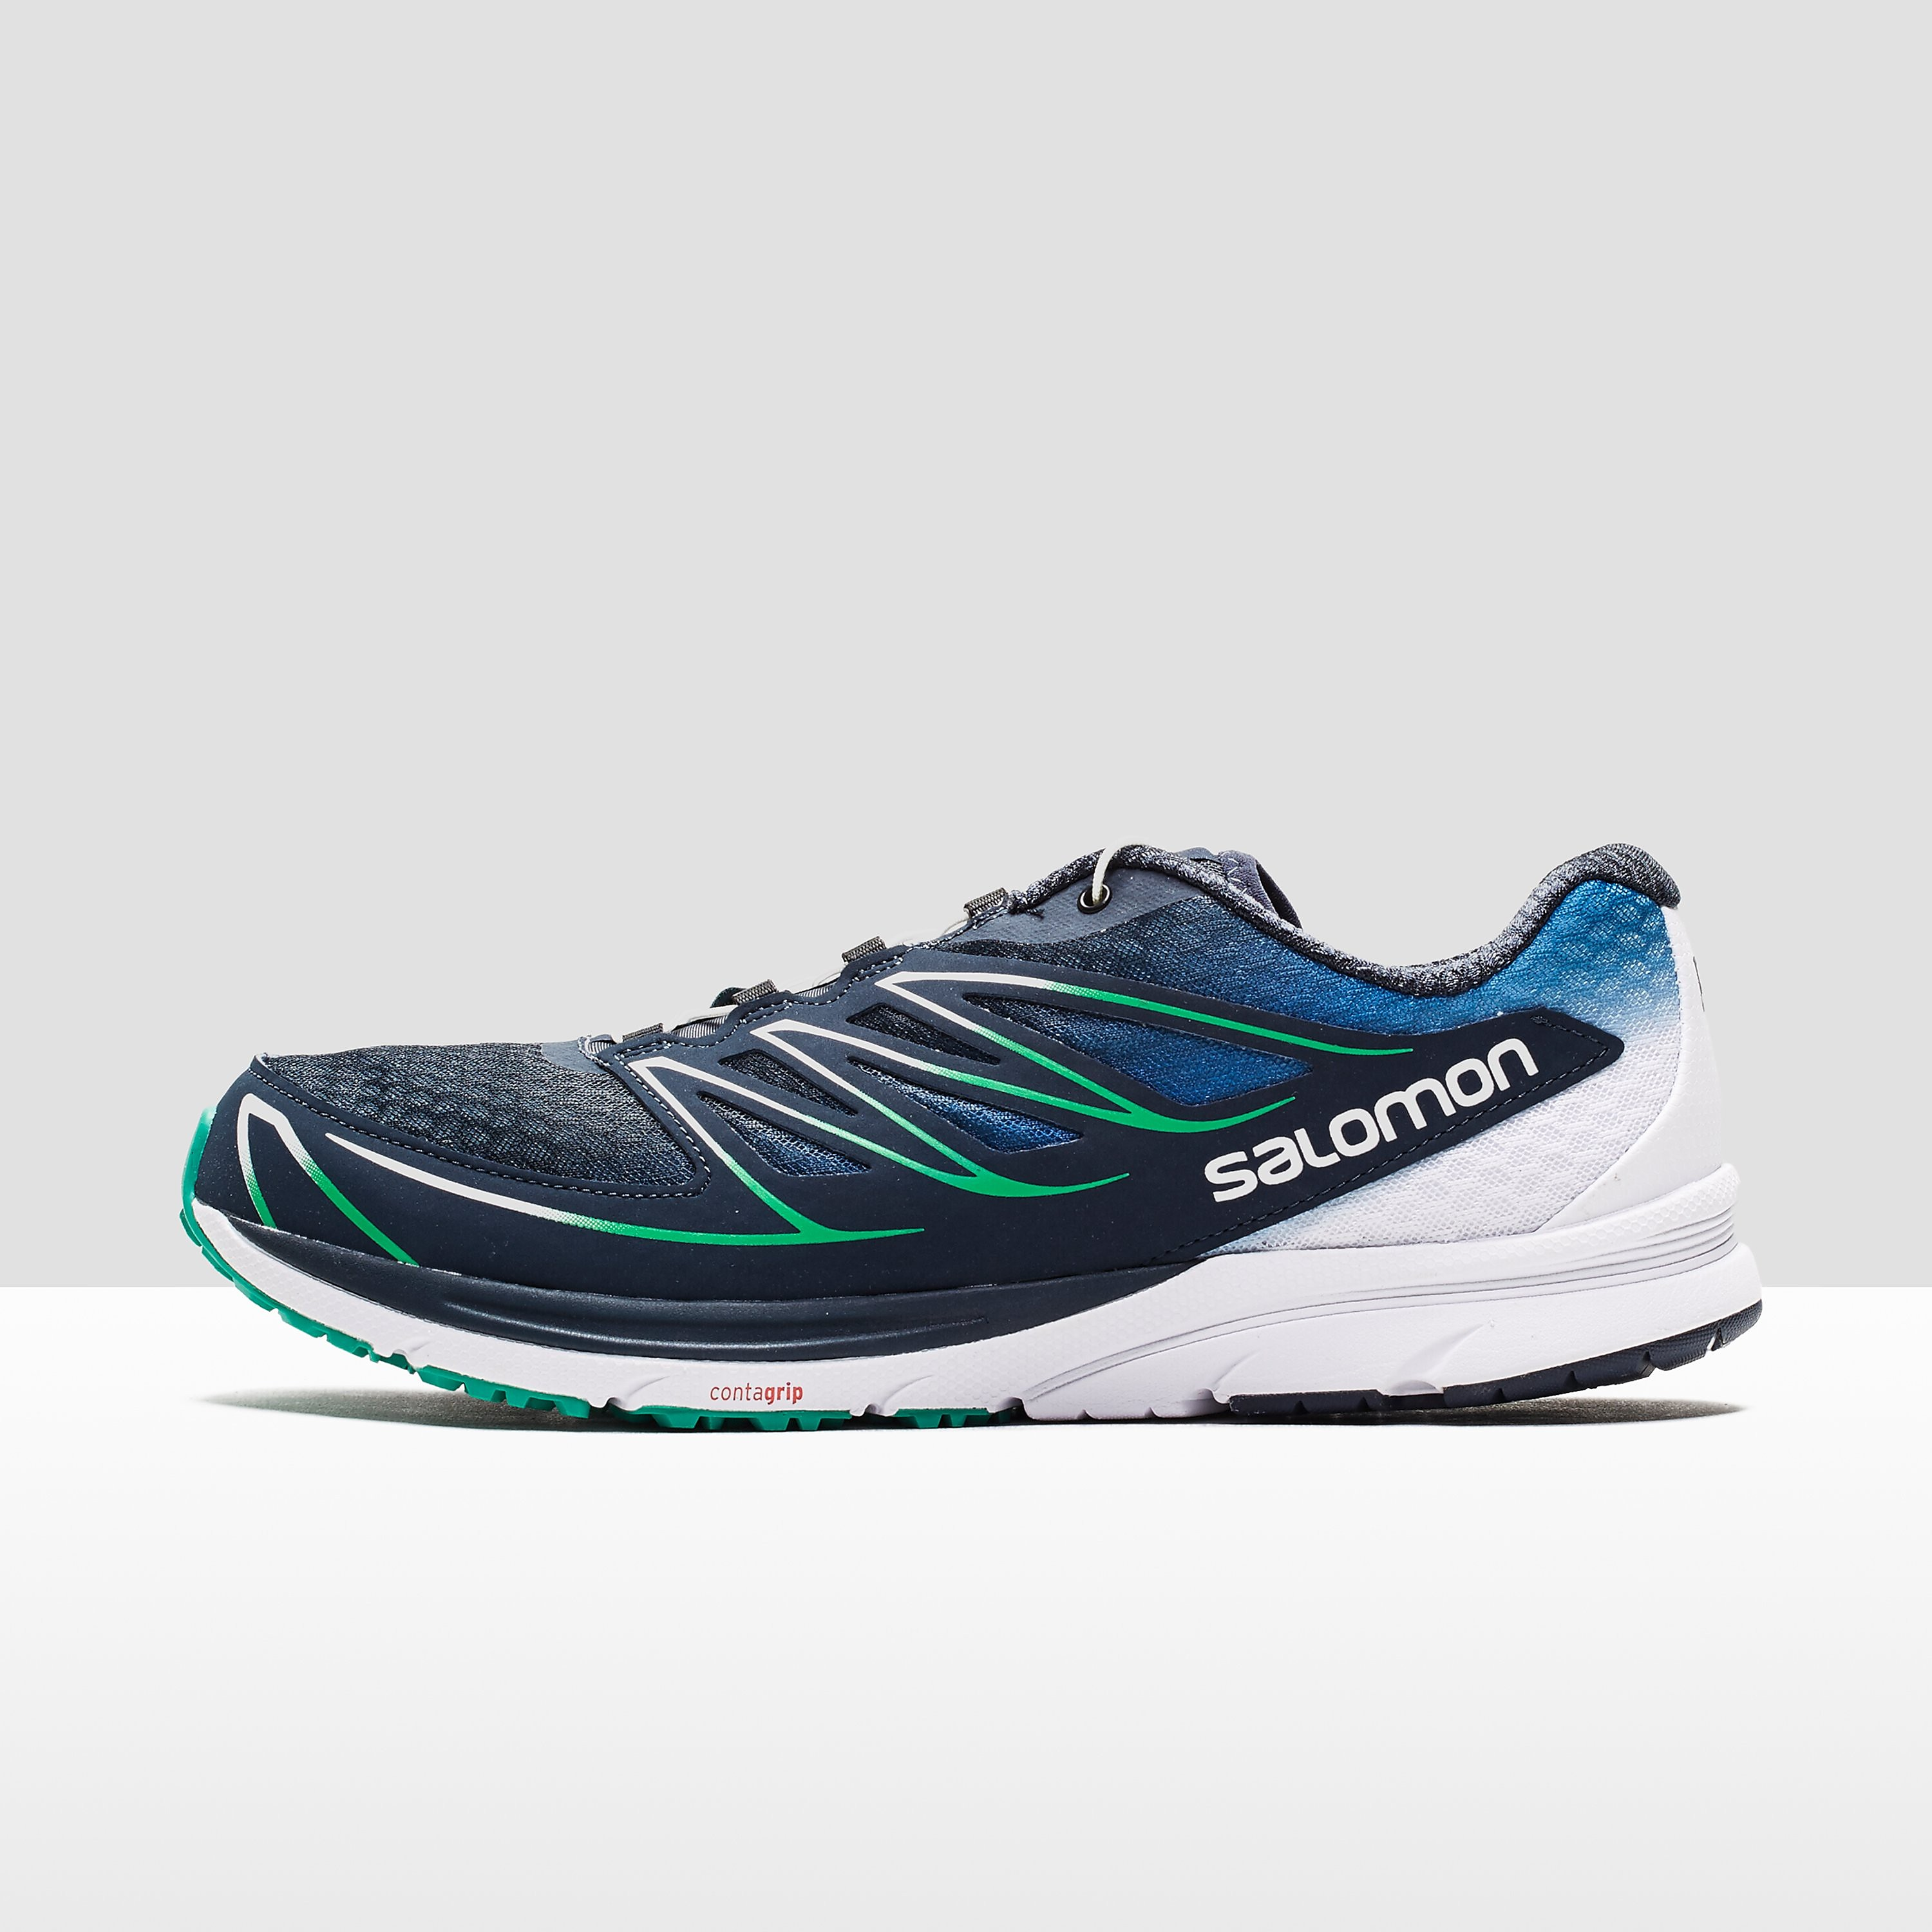 Salomon Sense Mantra 3 Men's Trail Running Shoe